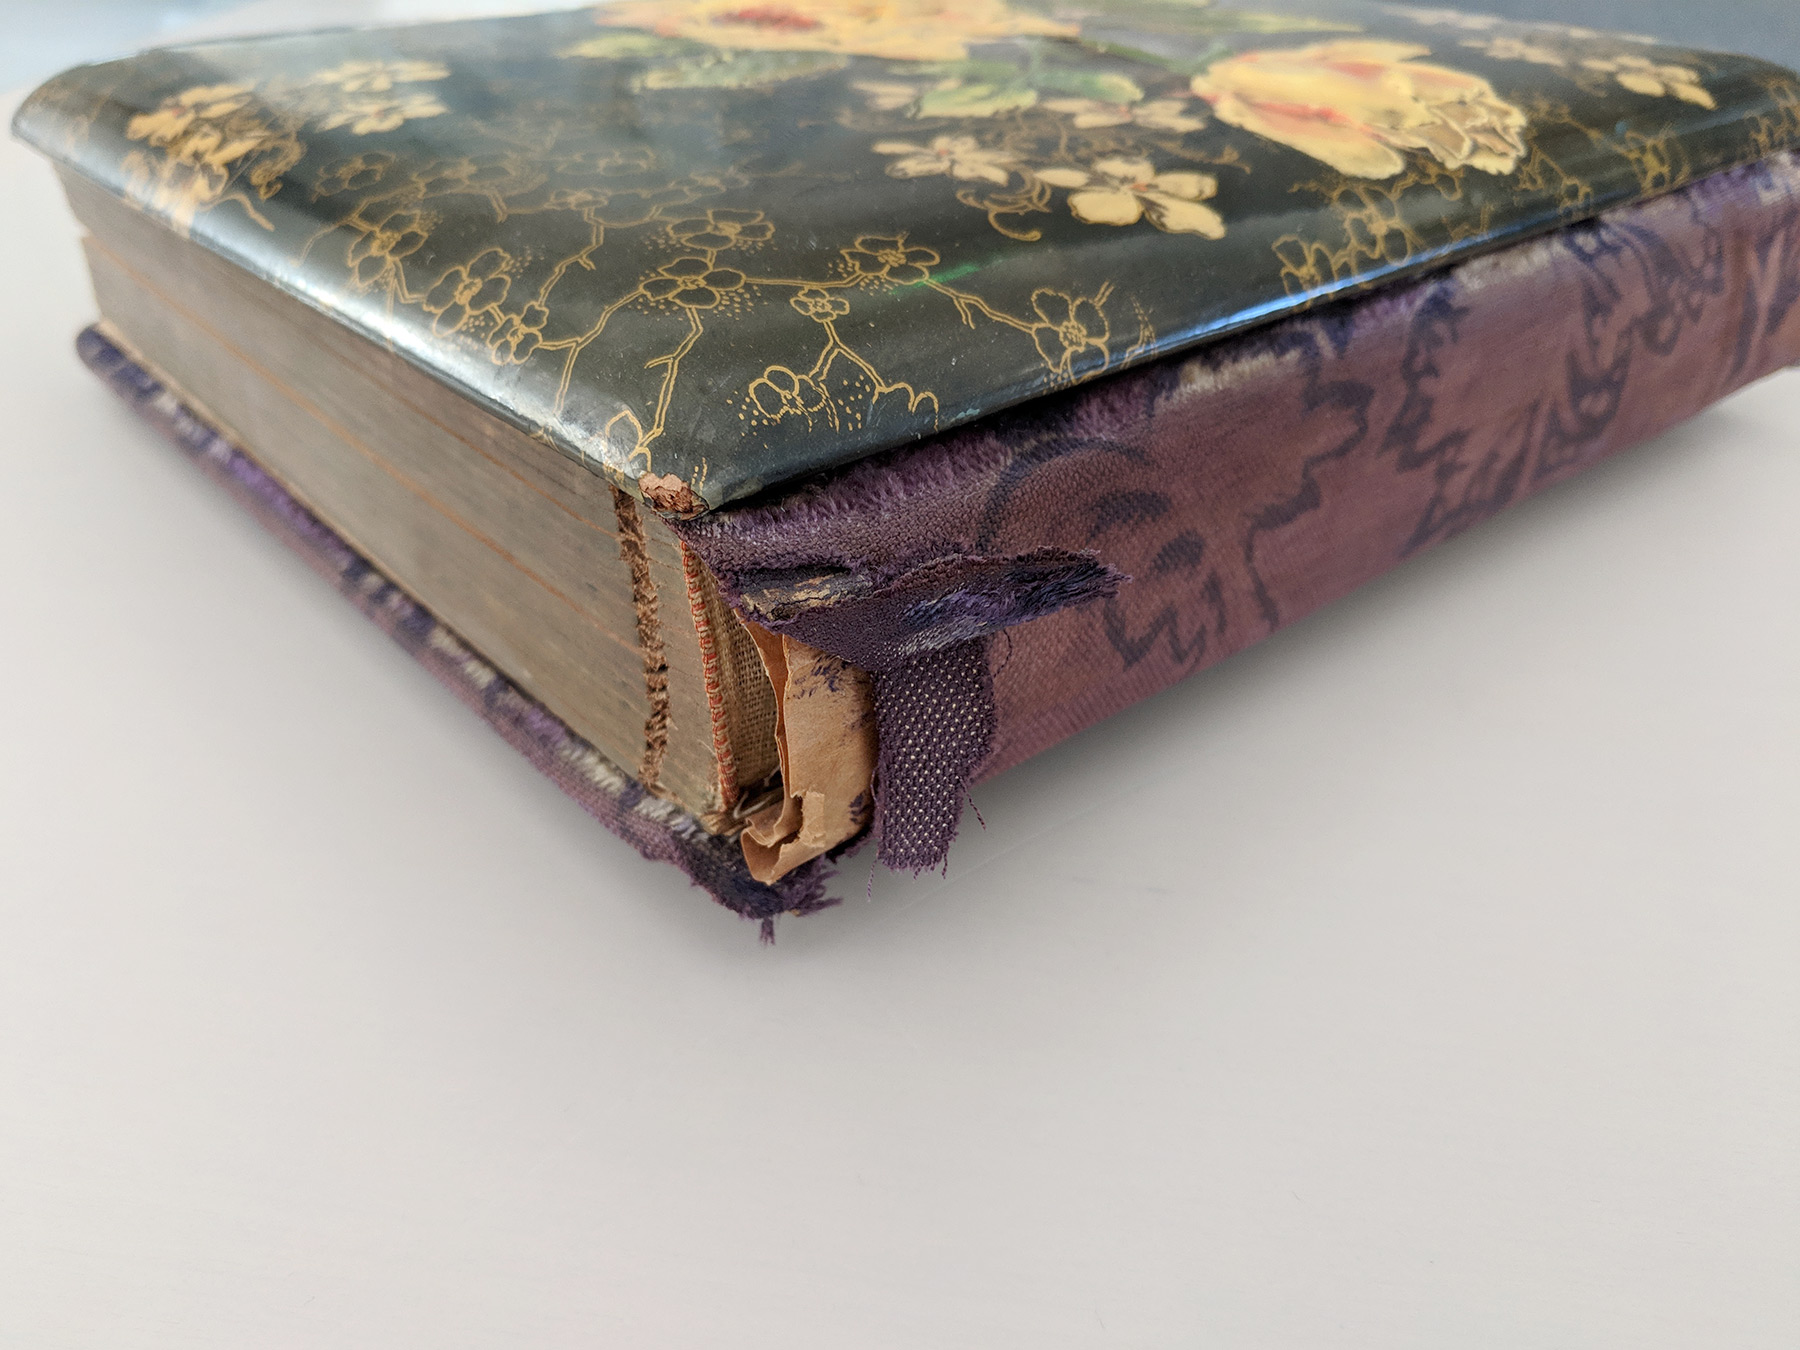 This family album has suffered damage to its textile binding.